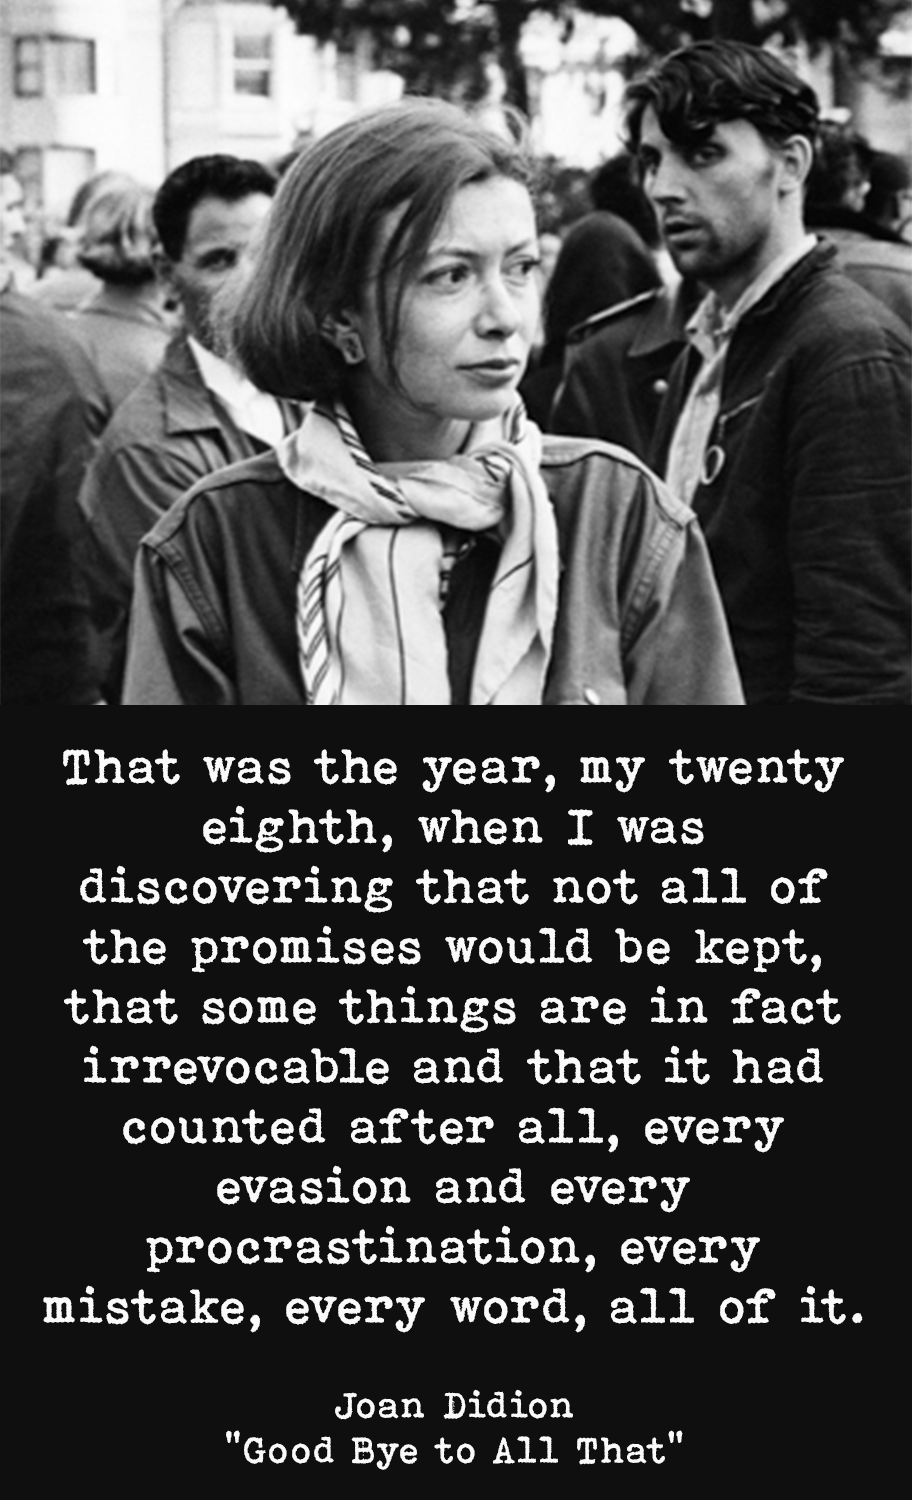 """That was the year, my twenty eighth, when I was discovering that not all of the promises would be kept…"" – Joan Didion reflecting on being young in NYC [912 x 1500]"